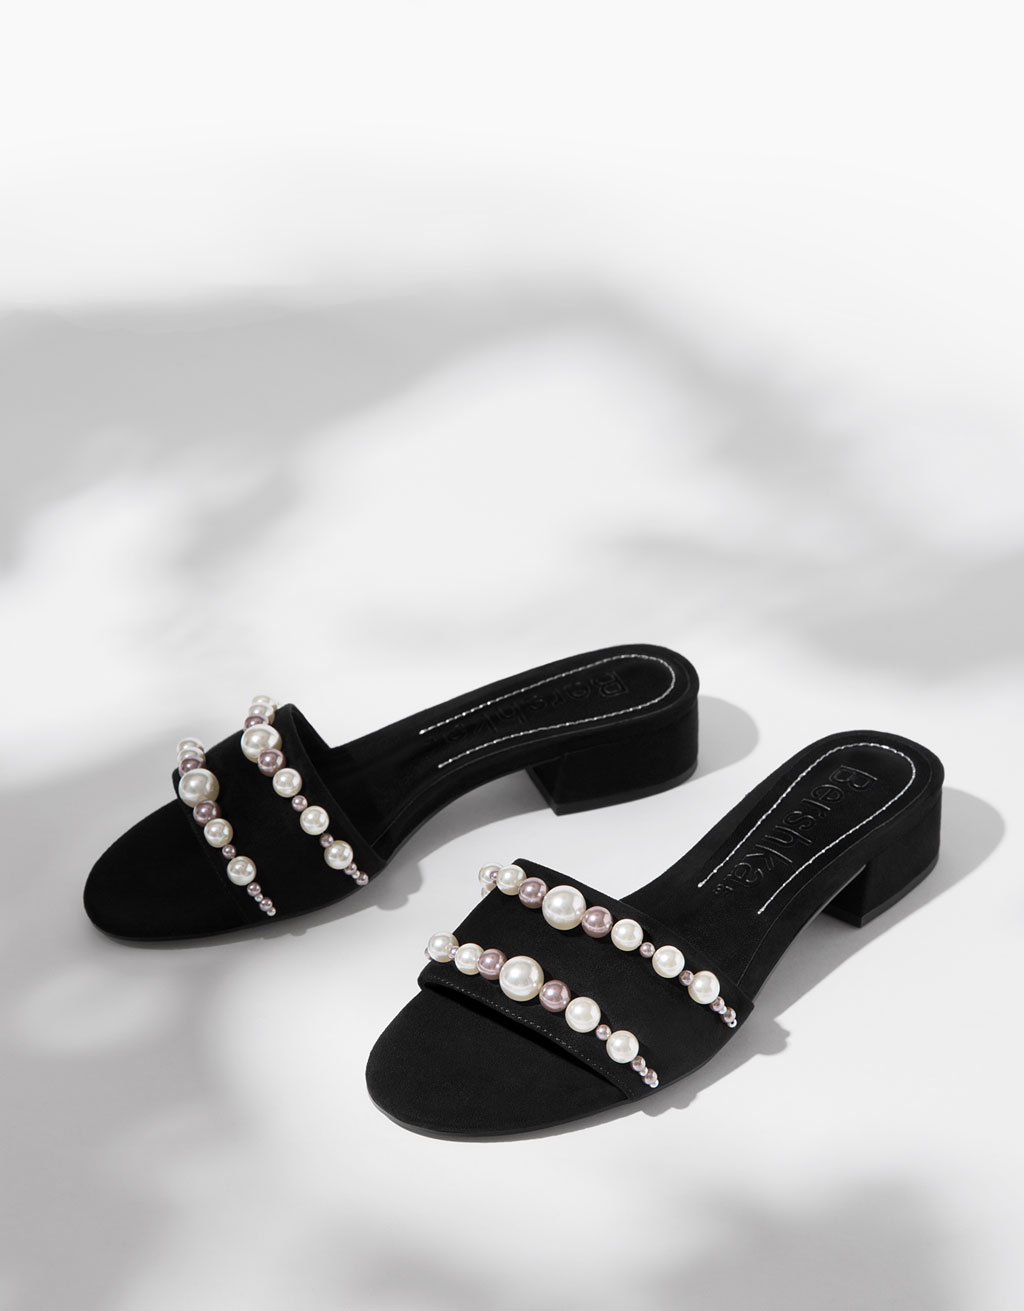 Low heel slides with faux pearls